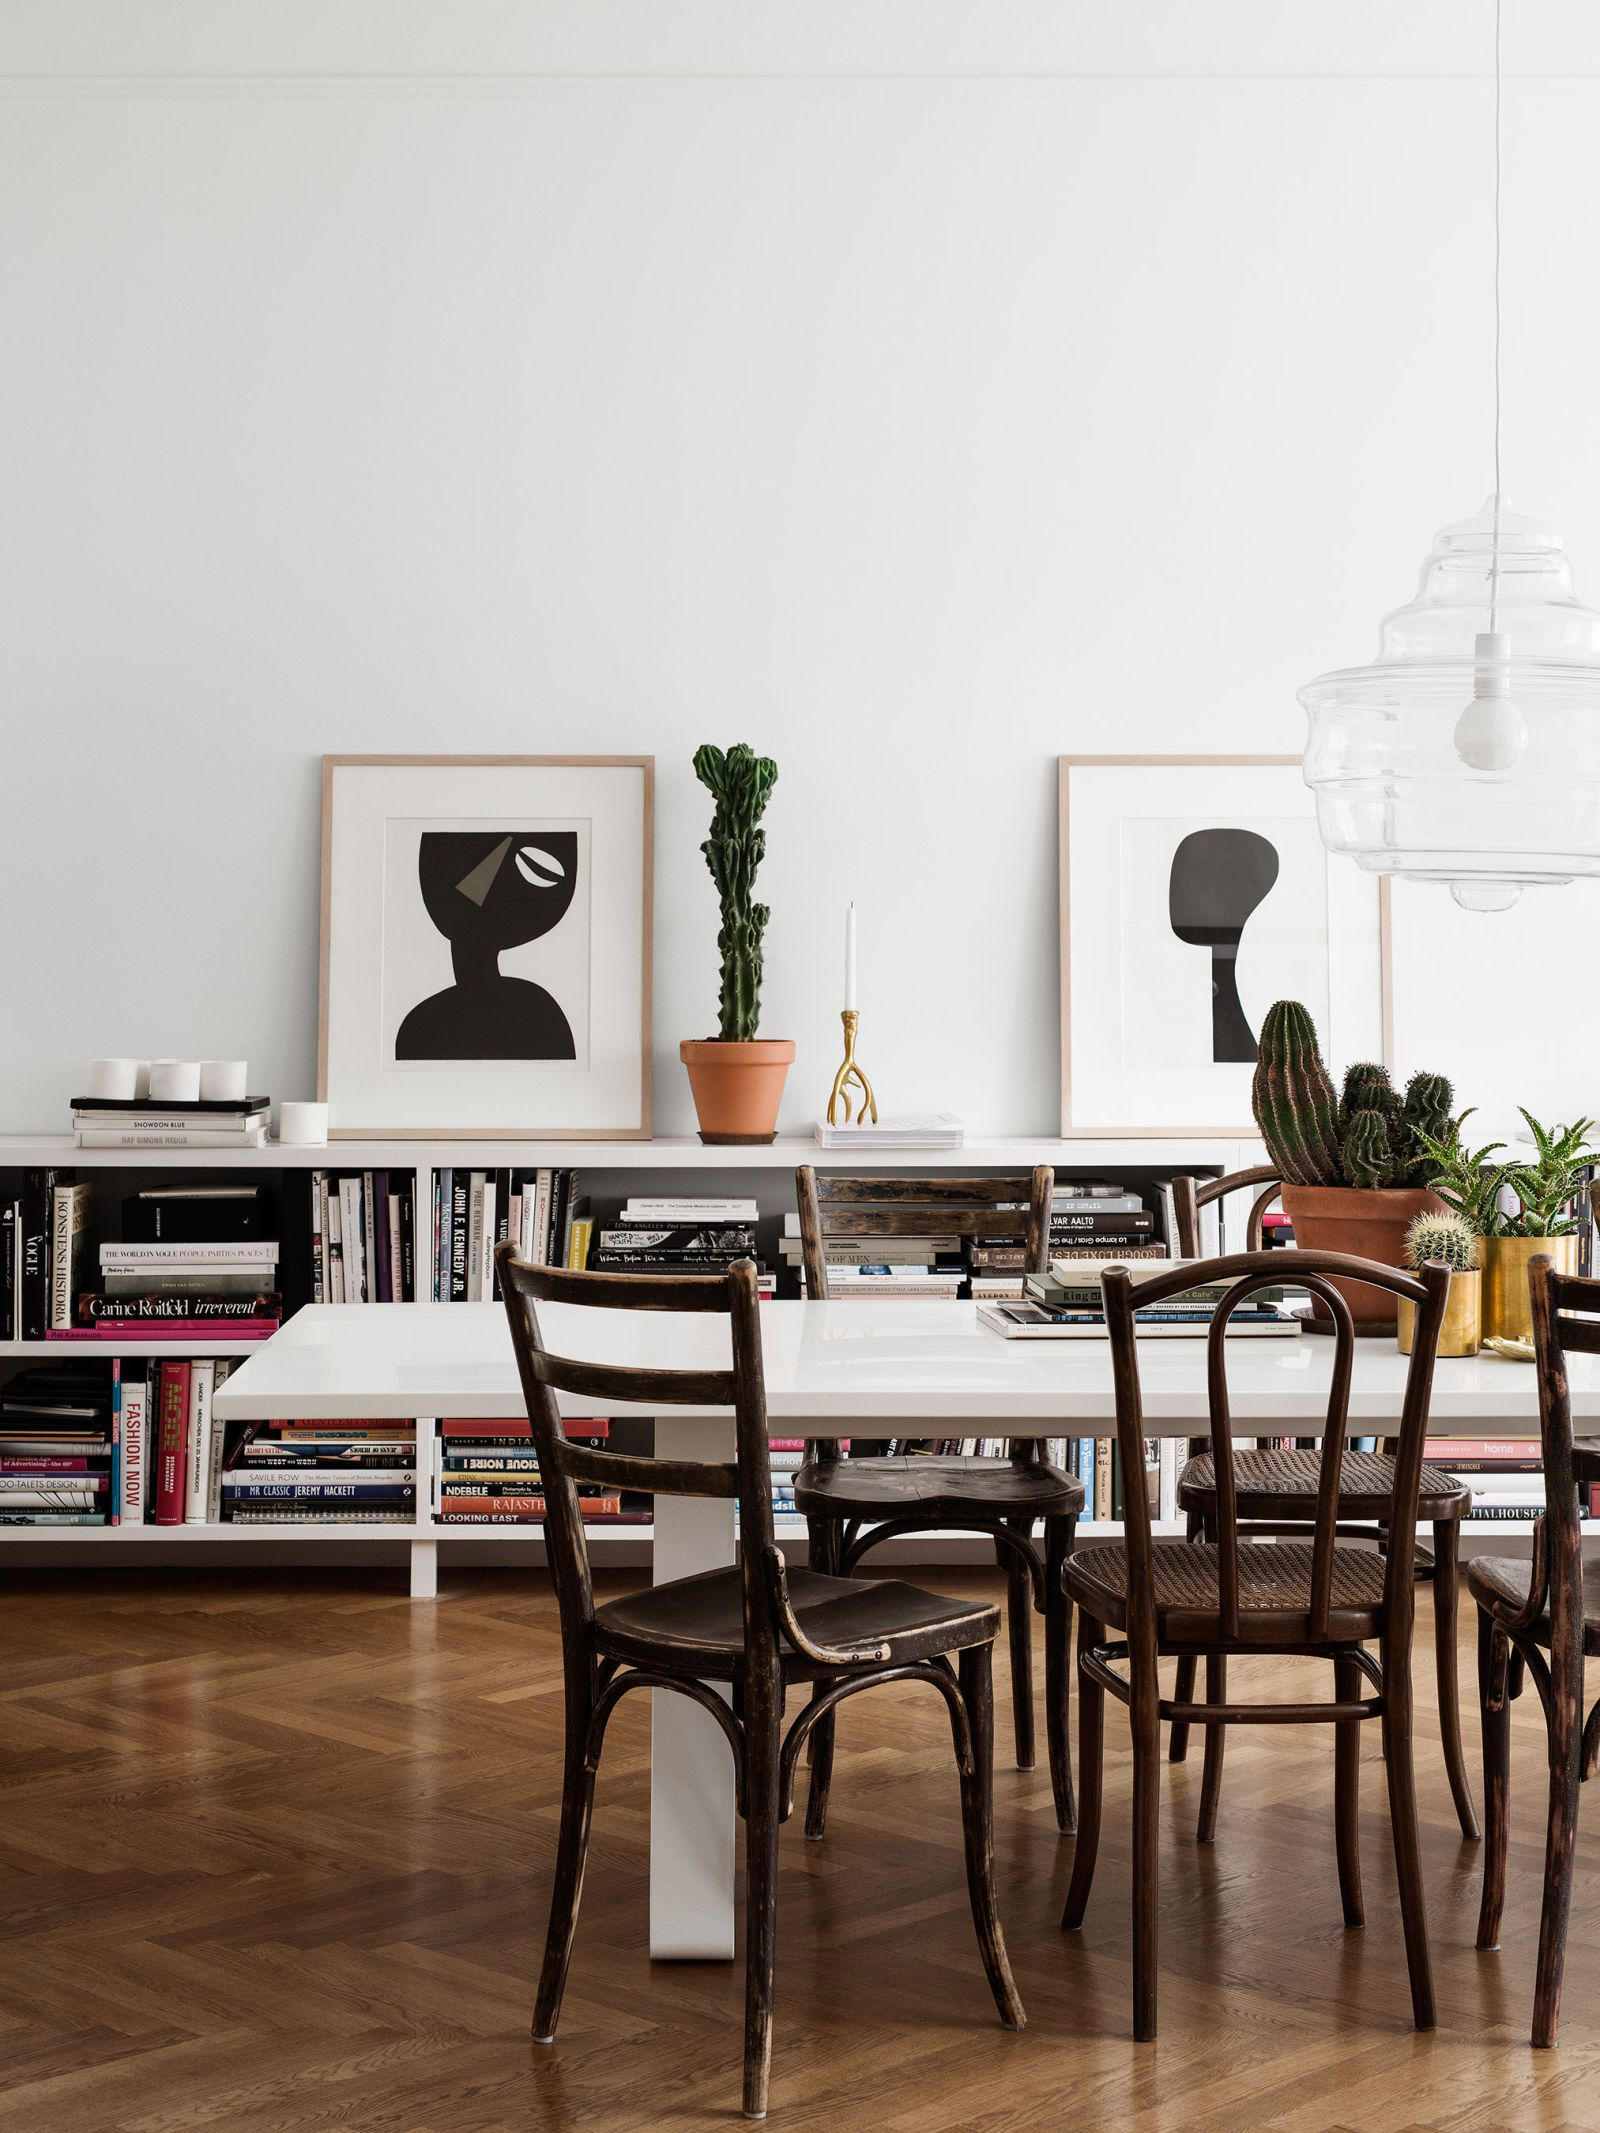 H&M Home's Head Of Design Proves Why You Should Only Live With Things You Love - ELLEDecor.com